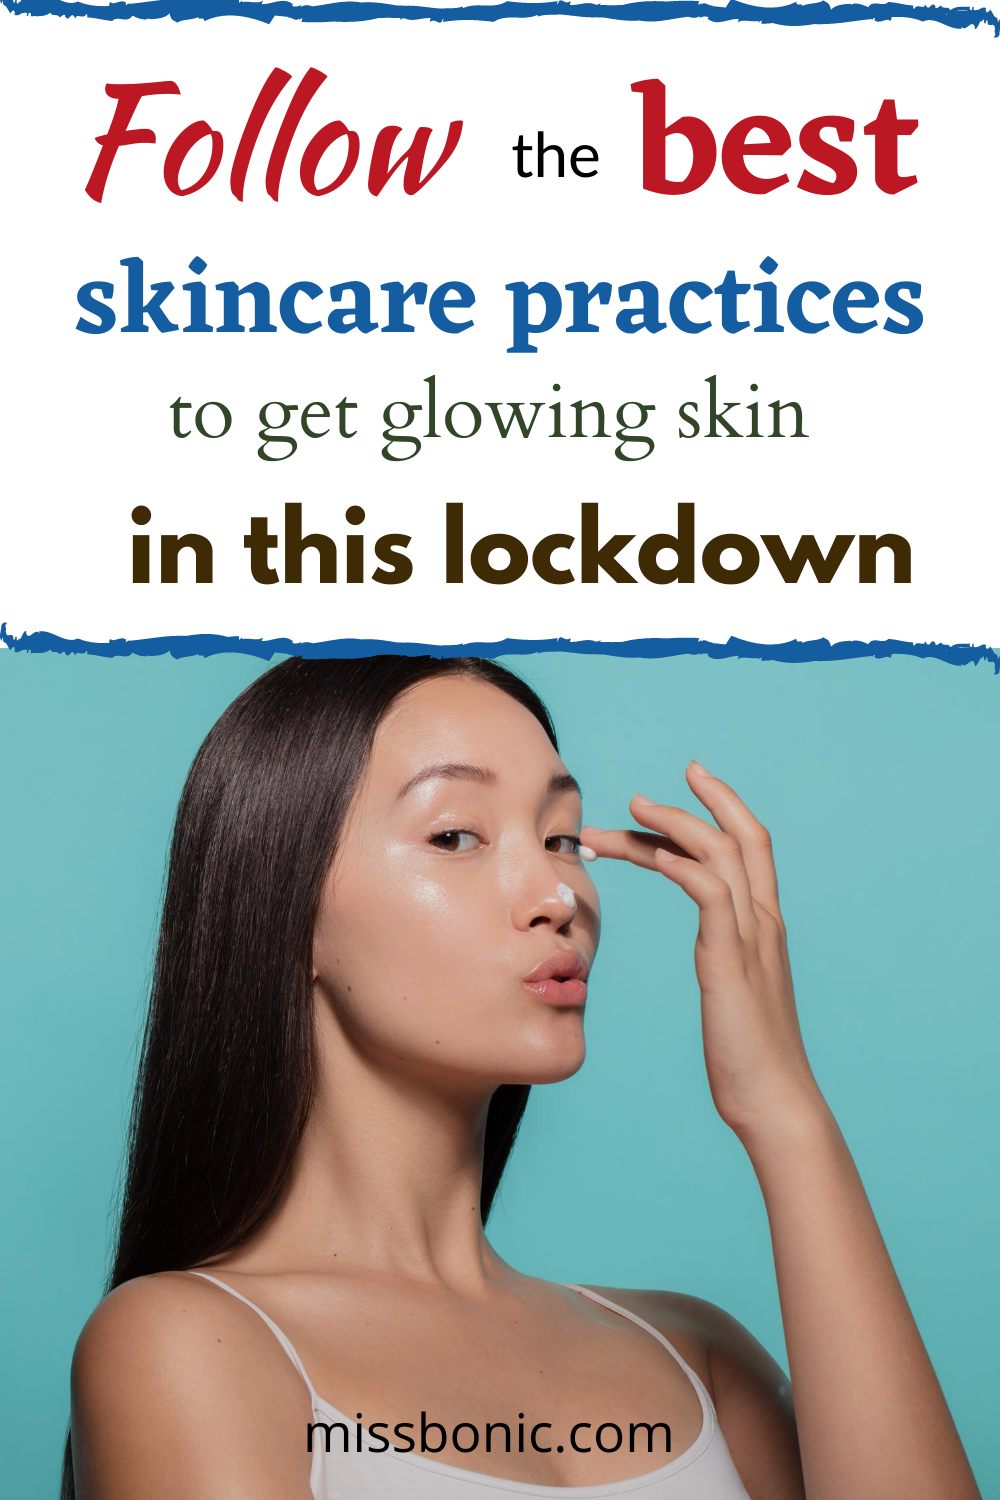 Follow The Best Skincare Practices To Get Glowing Skin In This Lockdown In 2020 Skin Care Skin Care Routine Skin Care Routine Steps